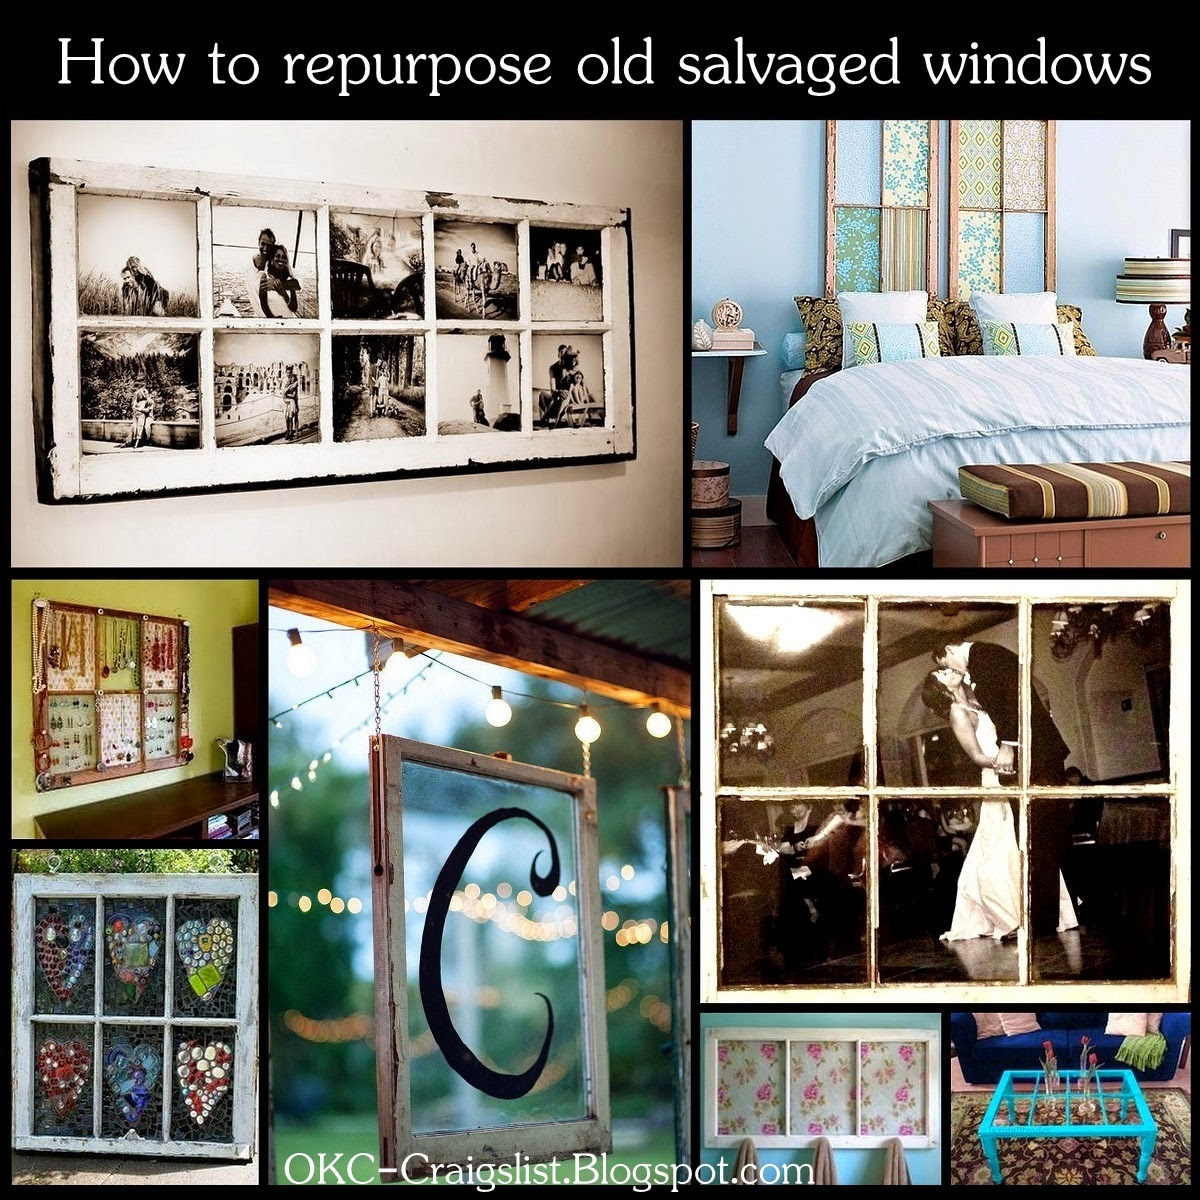 DIY HOW TO: Repurpose Old Salvaged Windows as Home Decor